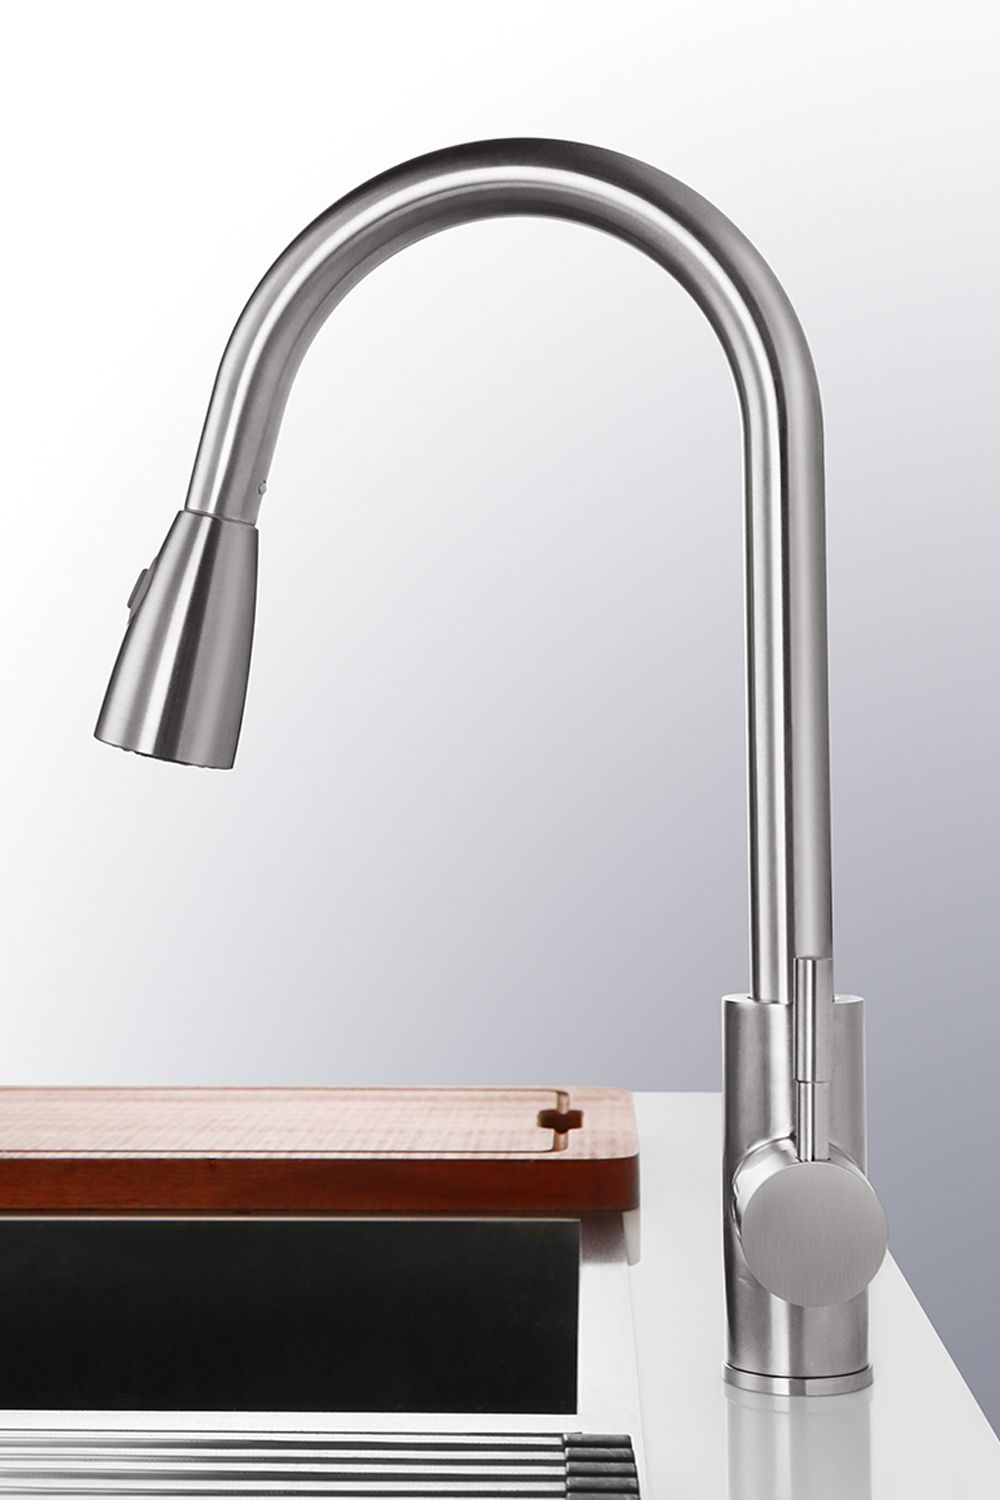 Pin On Kitchen Sink Faucet Pull Down Sink Taps Design